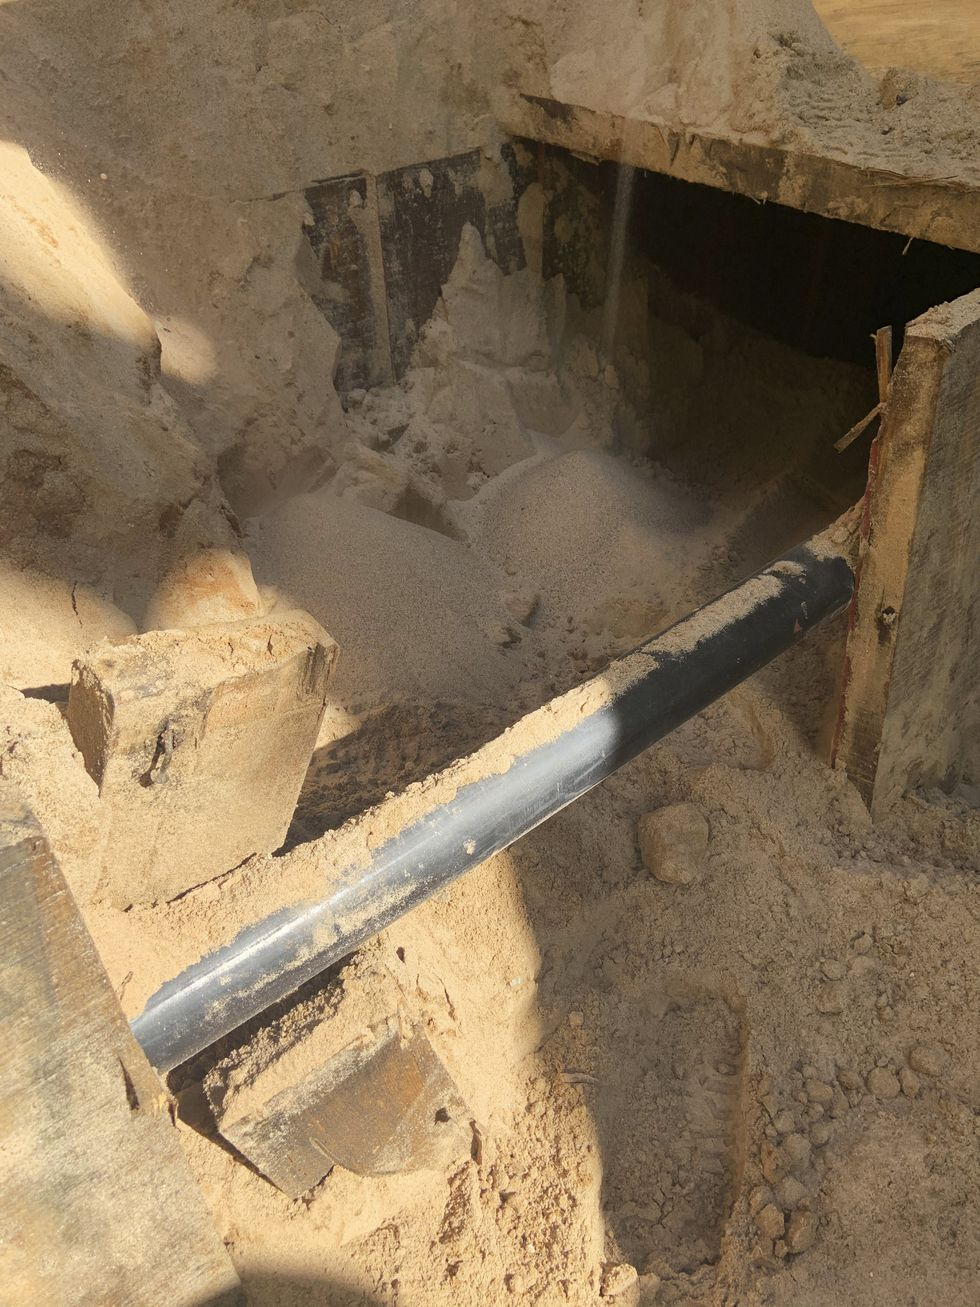 This photo provided by U.S. Immigration and Customs Enforcement shows a section of an incomplete tunnel intended for smuggling, found stretching from Arizona to Mexico.